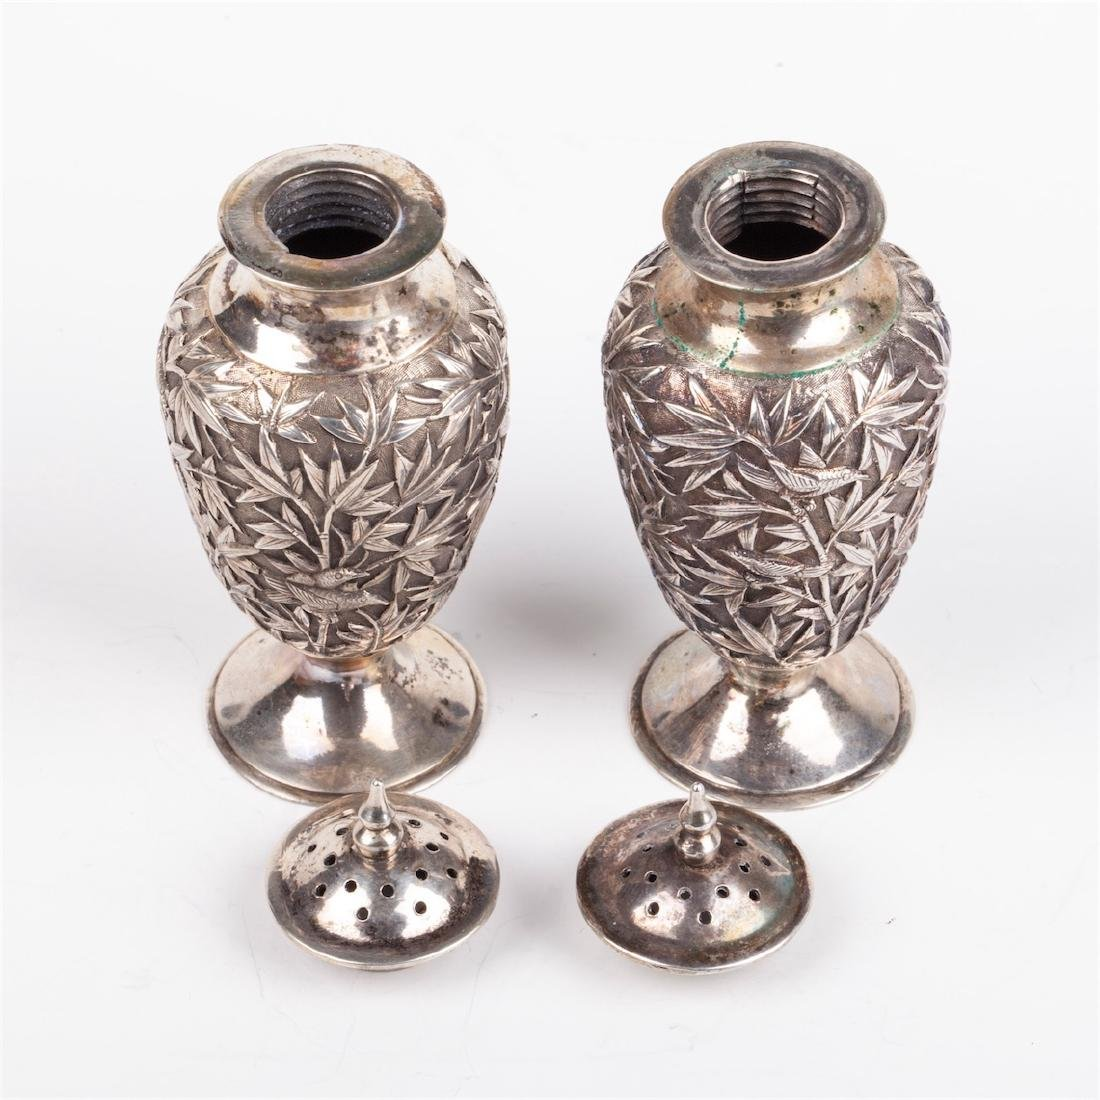 A pair of antique silver salt cellars with floral - 5